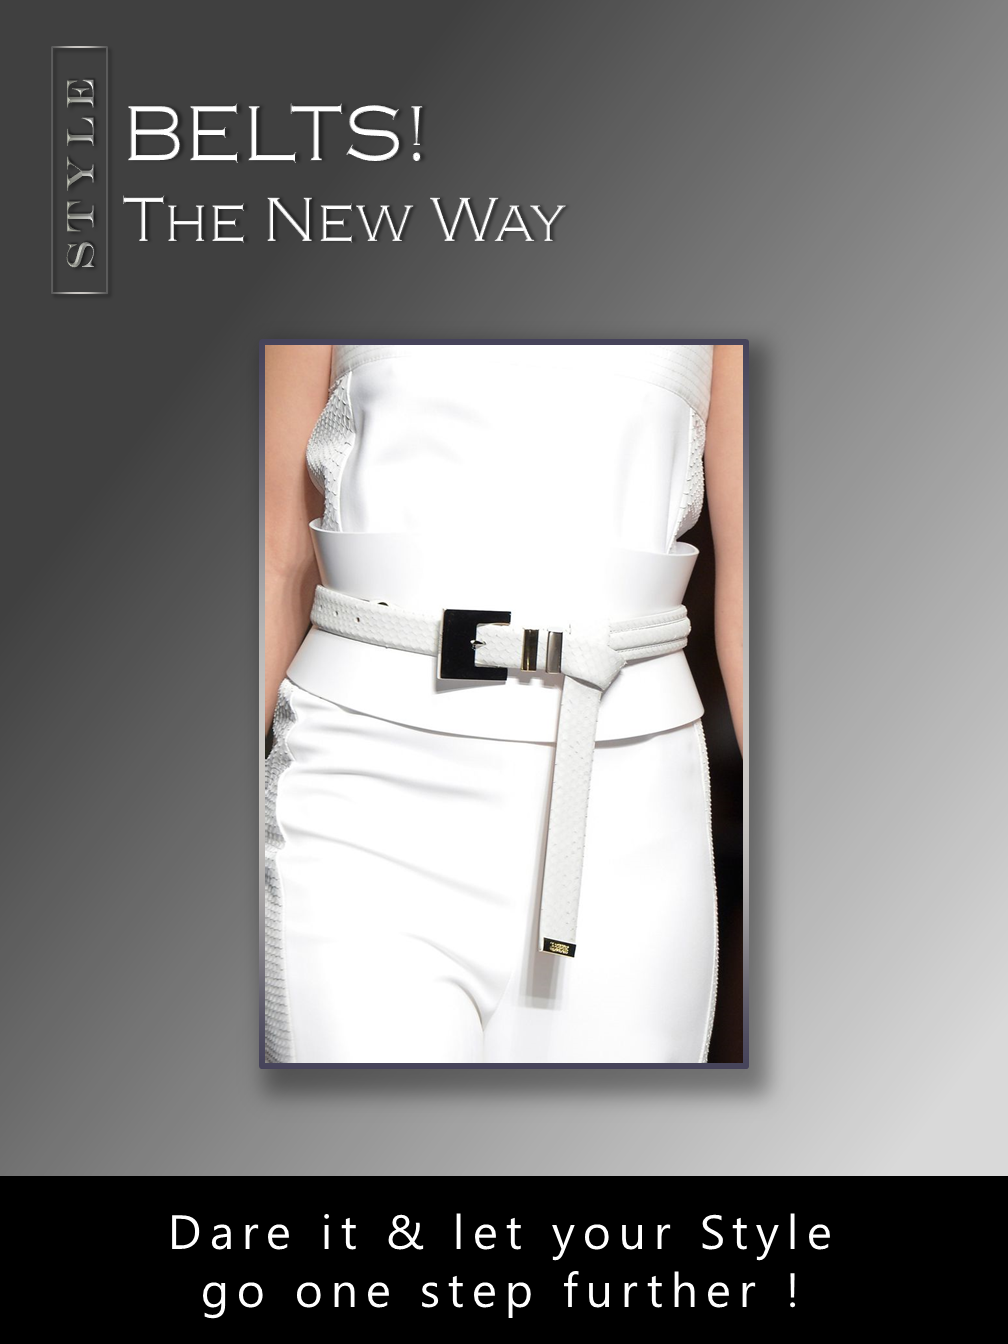 Belts: The New Way!